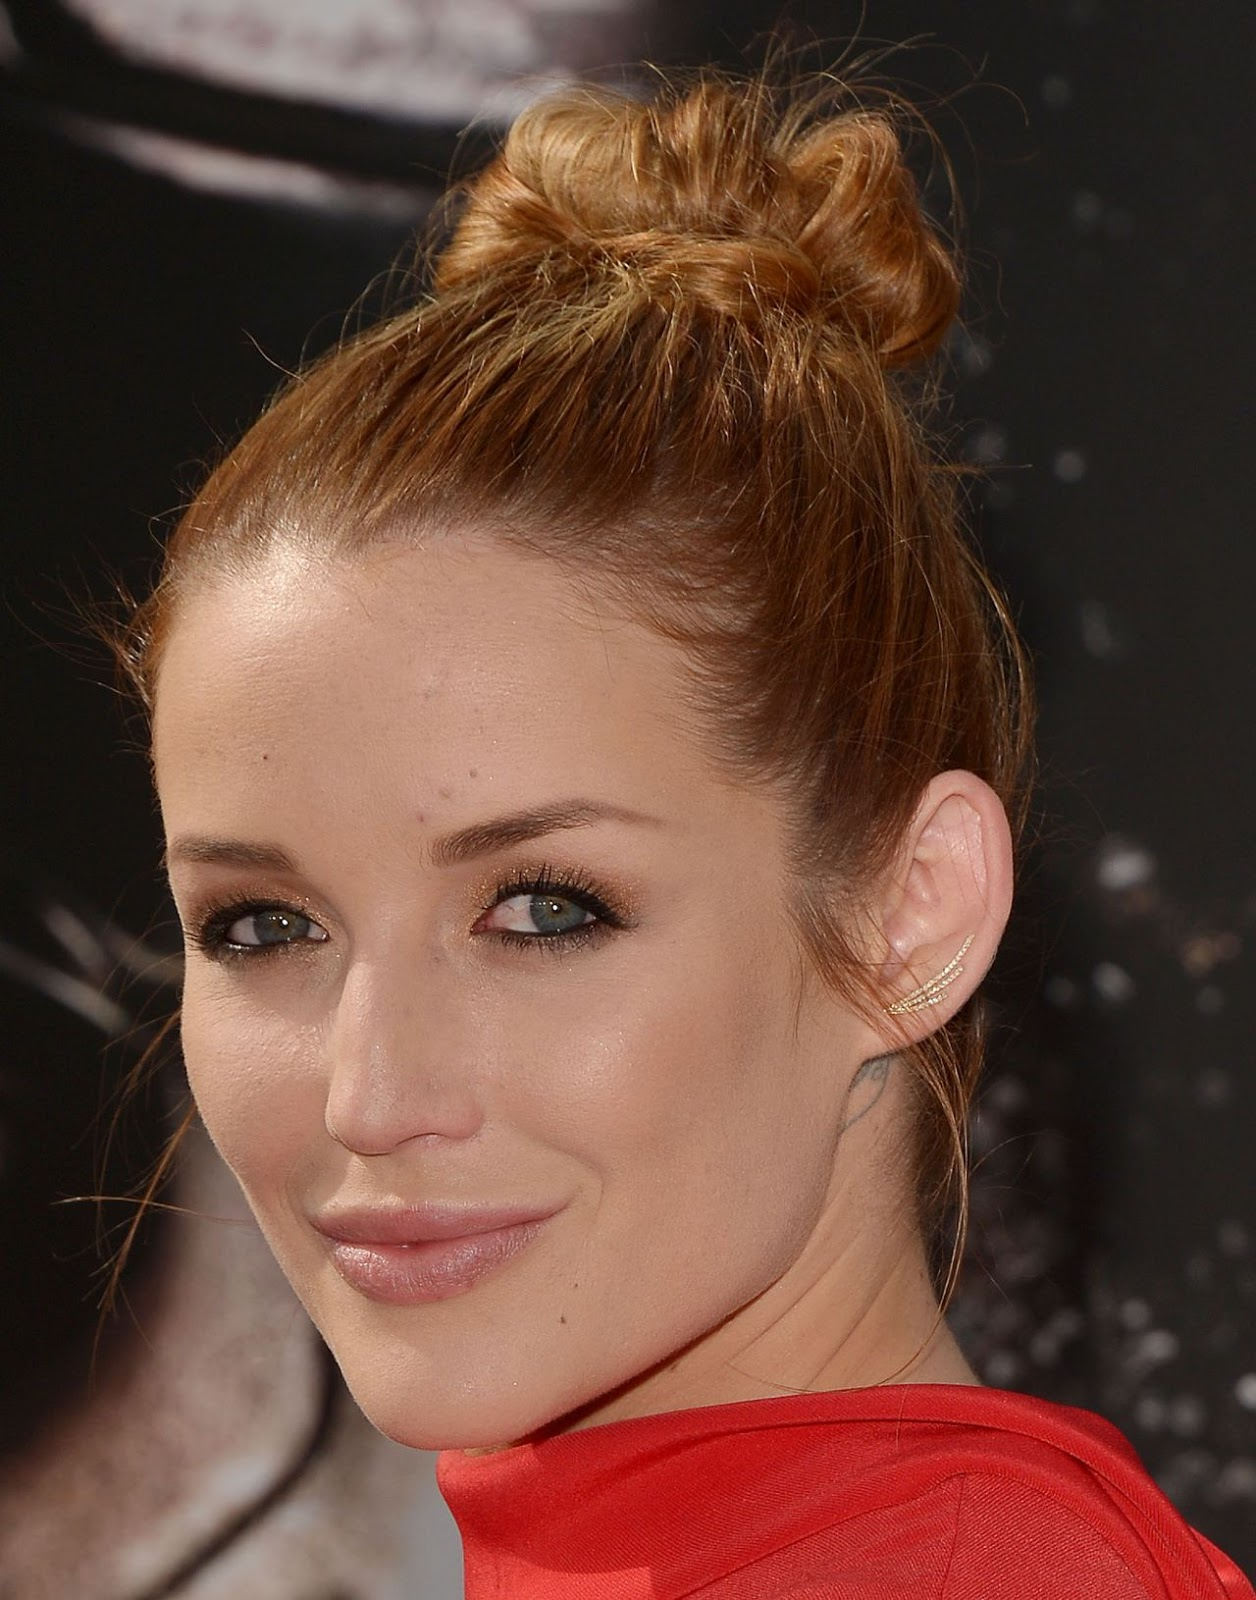 Terminator Genisys Hot actress Sarah Dumont Full HD Images & Wallpapers